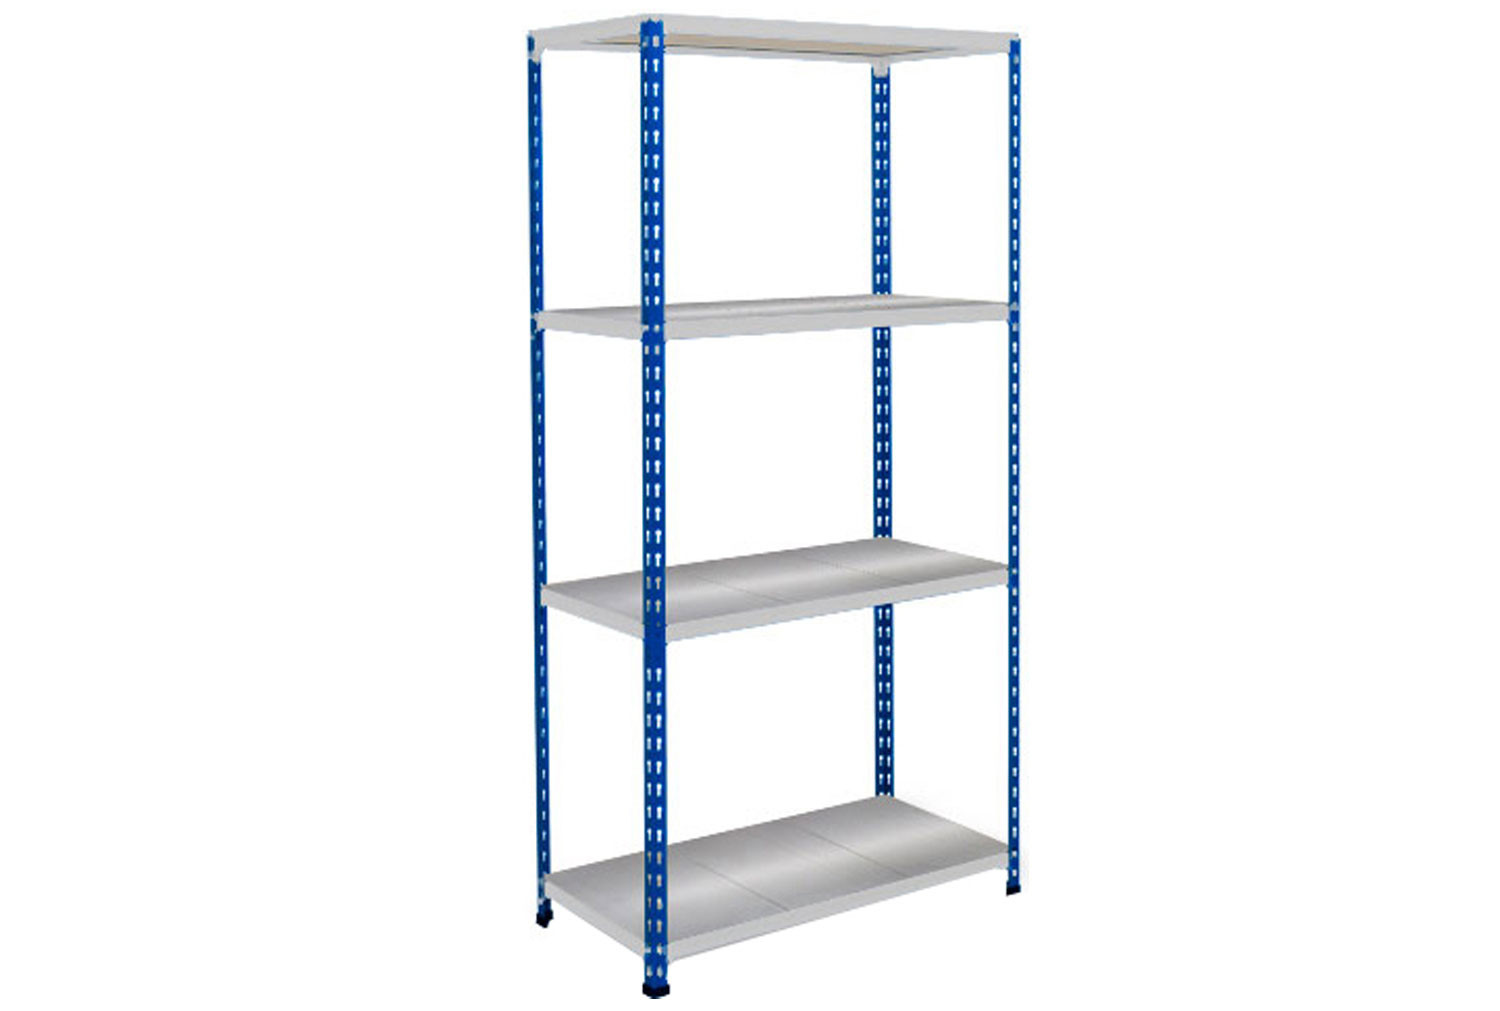 Rapid 2 Shelving With 4 Galvanized Shelves 1525wx1600h (Blue/Grey)